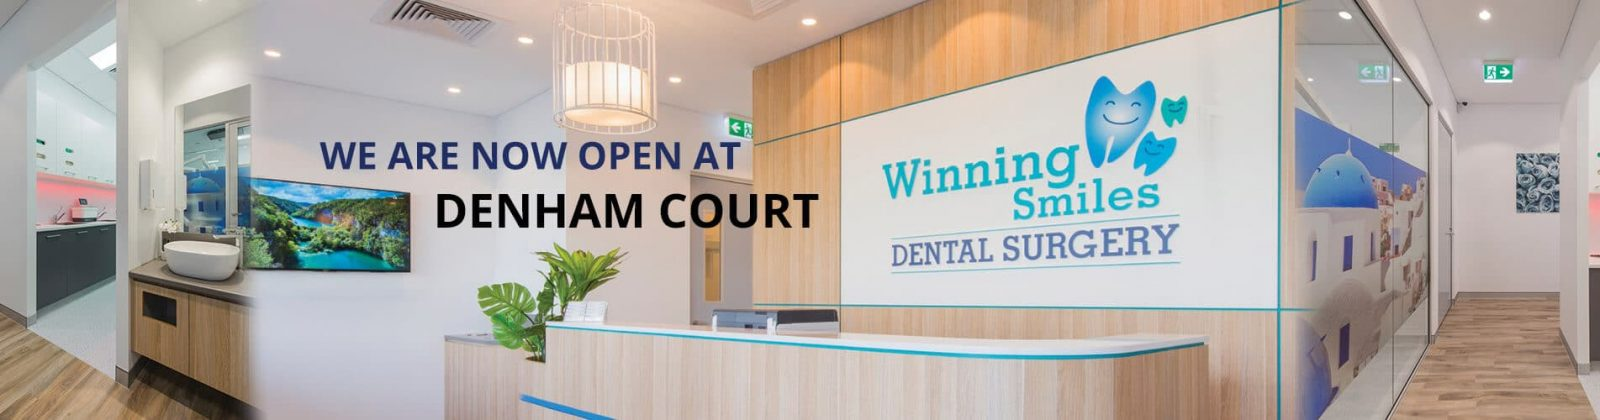 Denham Court Dentists